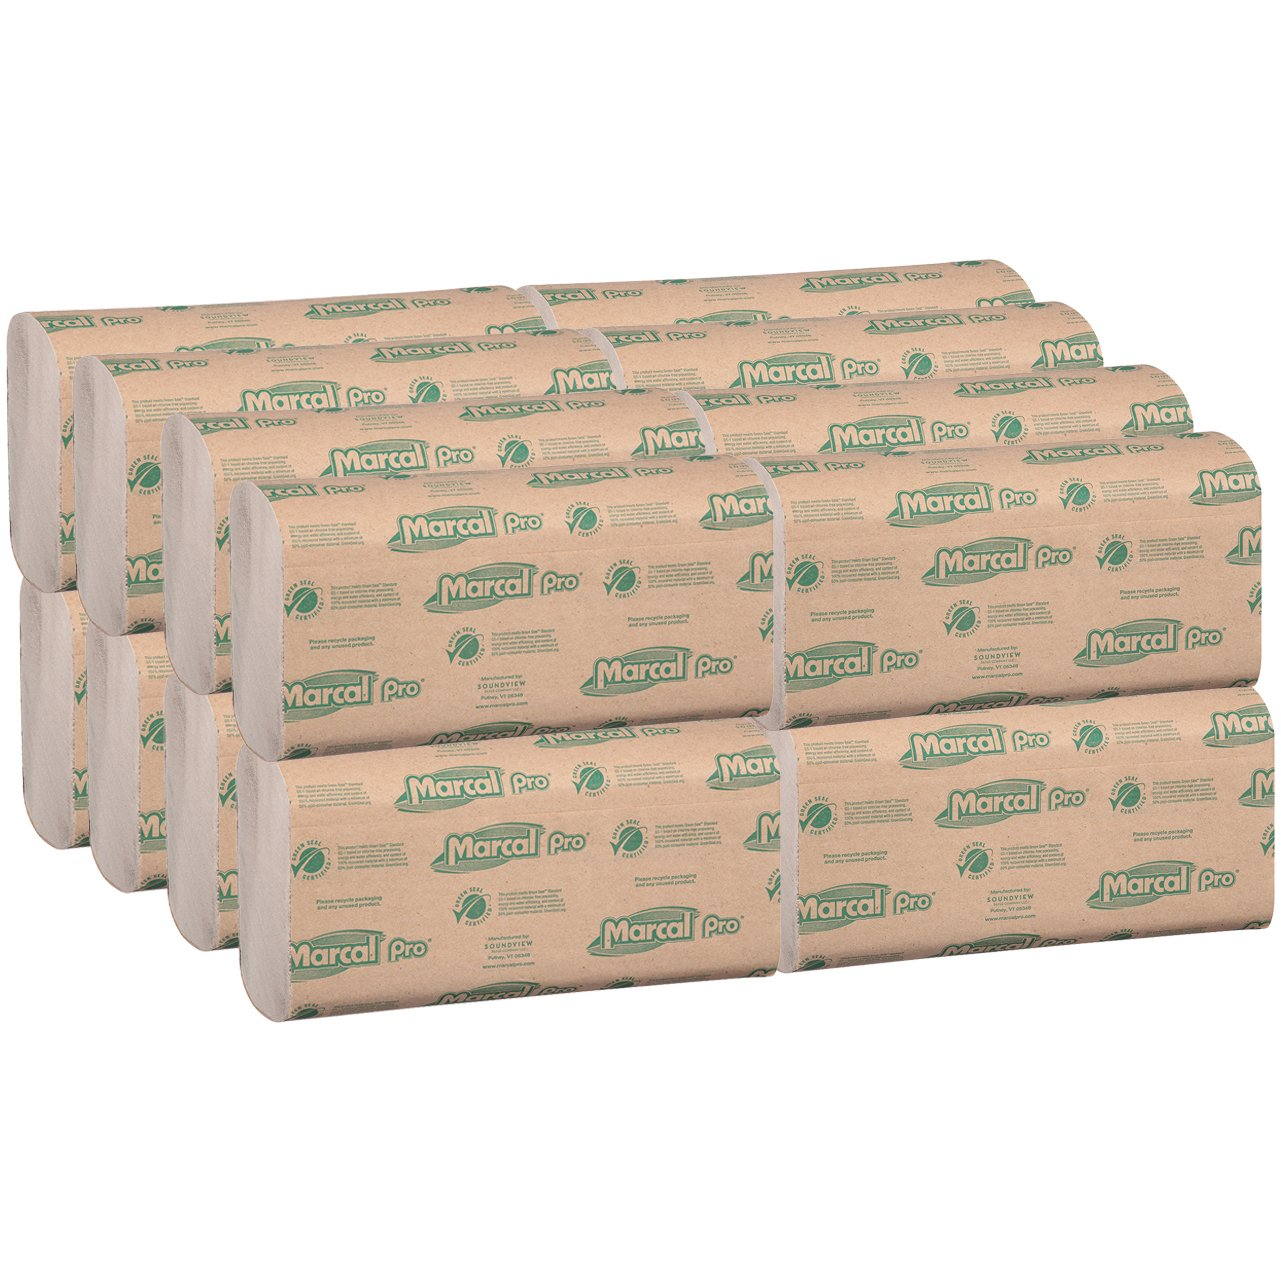 Marcal Pro Multi-Fold Paper Towels, 100% Recycled, 1-Ply, Natural Color Hand Towels, 250 Per Pack, 16 Packs per Case for 4000 Total Green Seal Certified ...